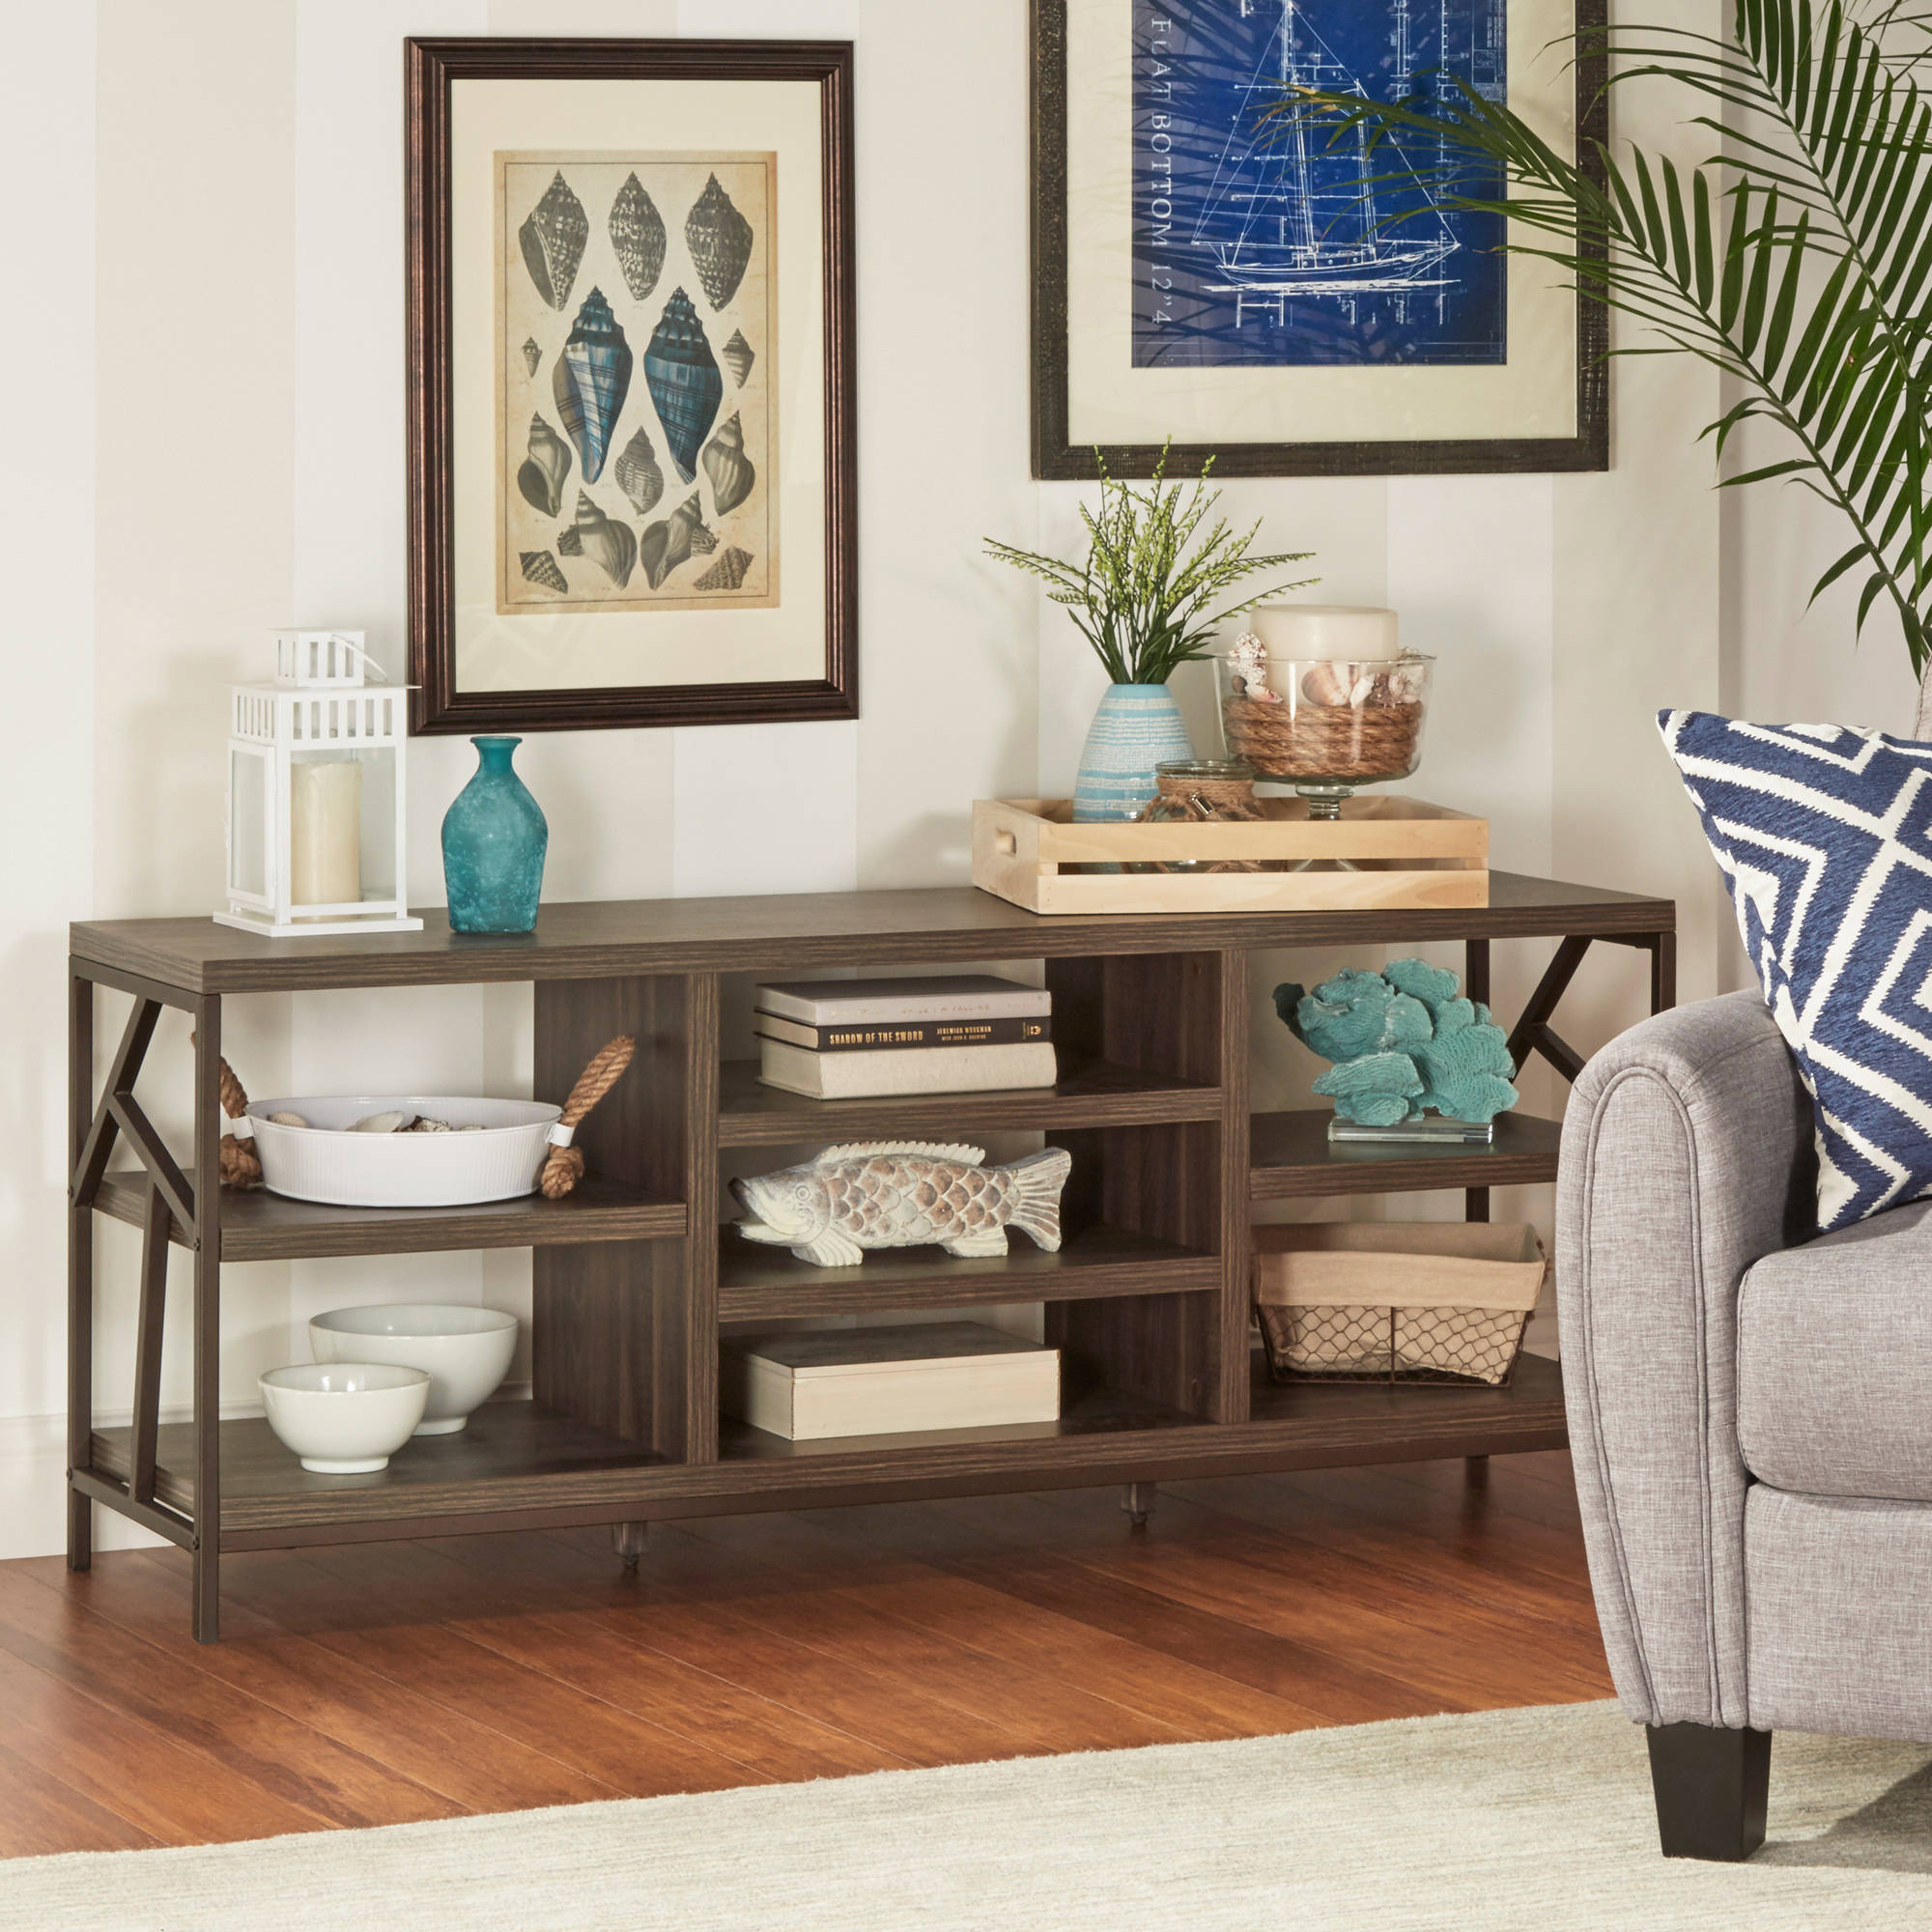 Weston Home Elements Metal Accent Storage Media Console